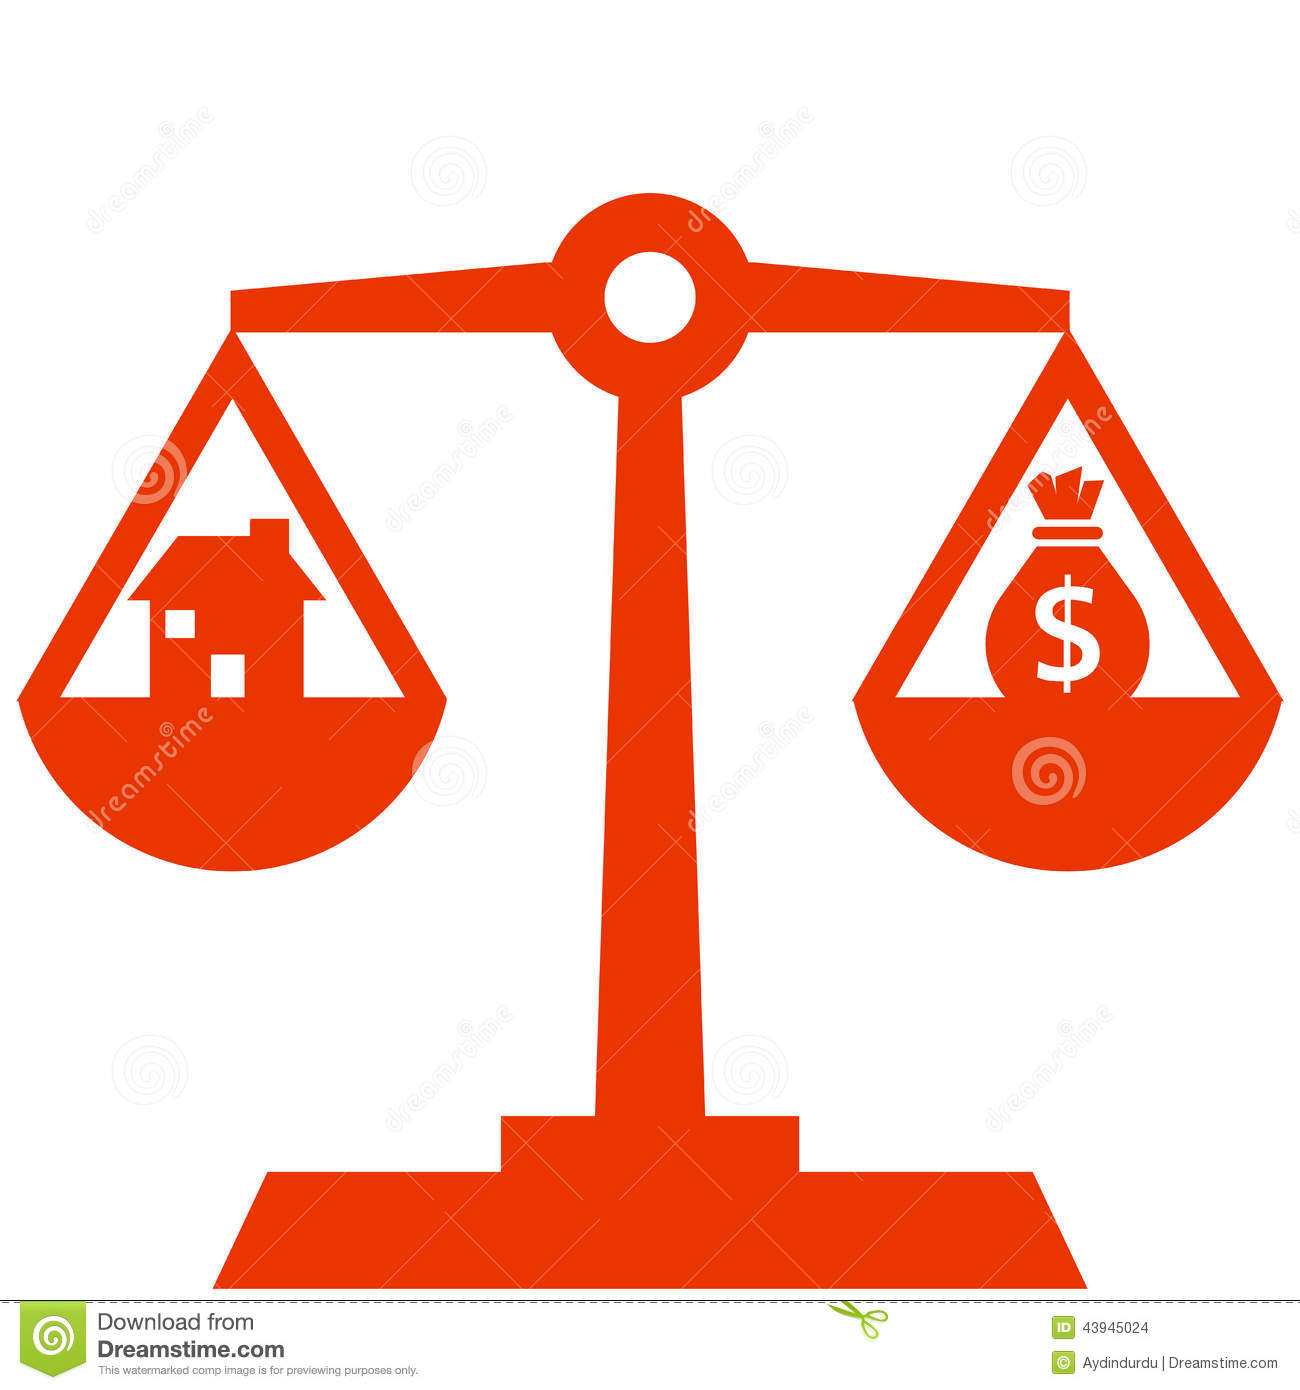 Money On Balancing Scales Stock Images - Image: 11860984